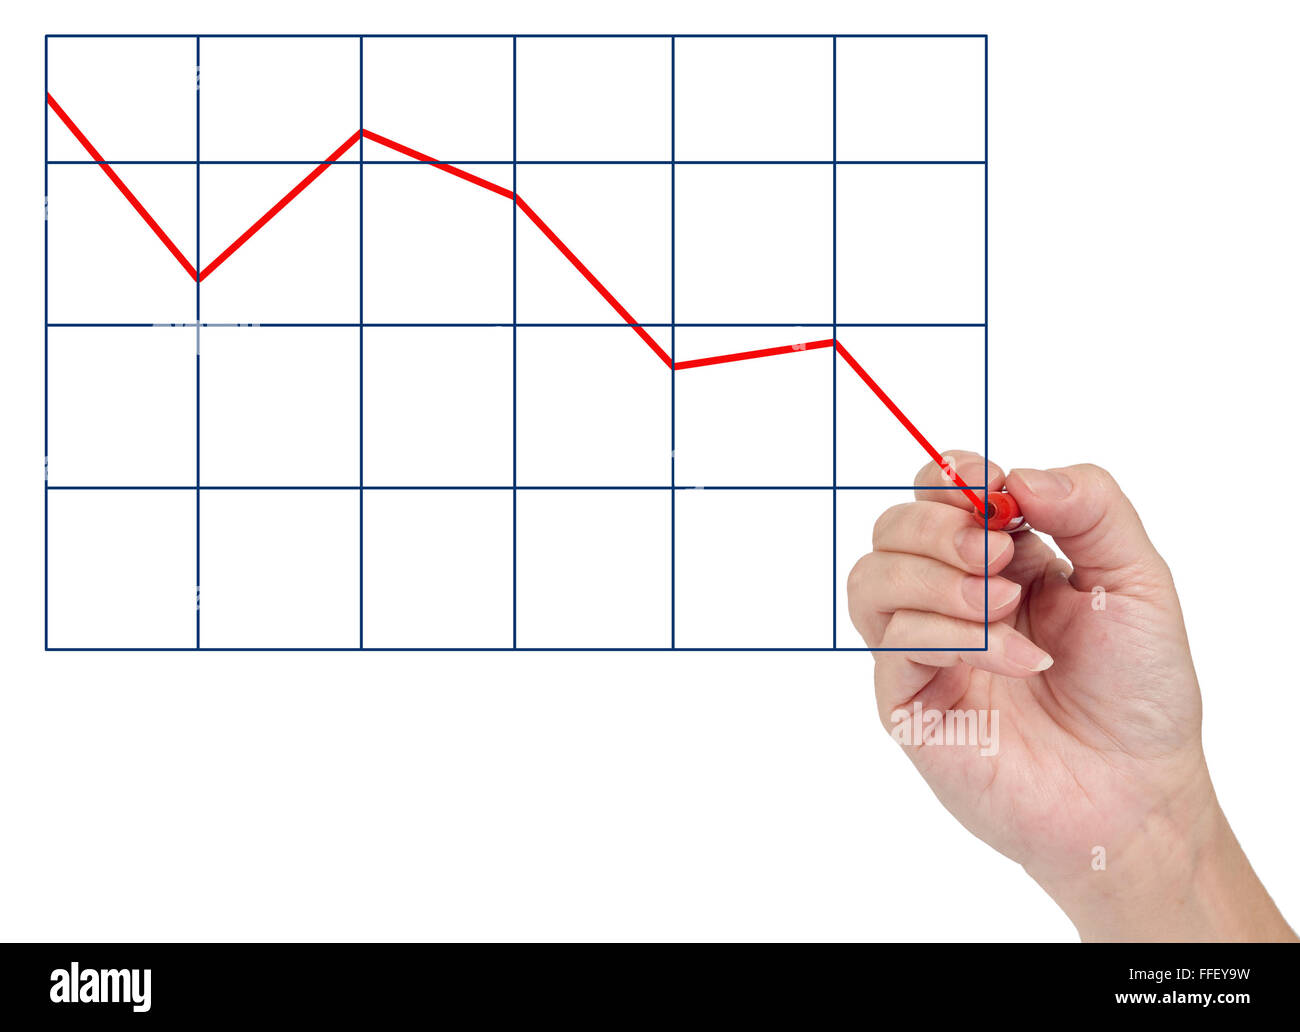 Hand Drawing Market Decline - Stock Image